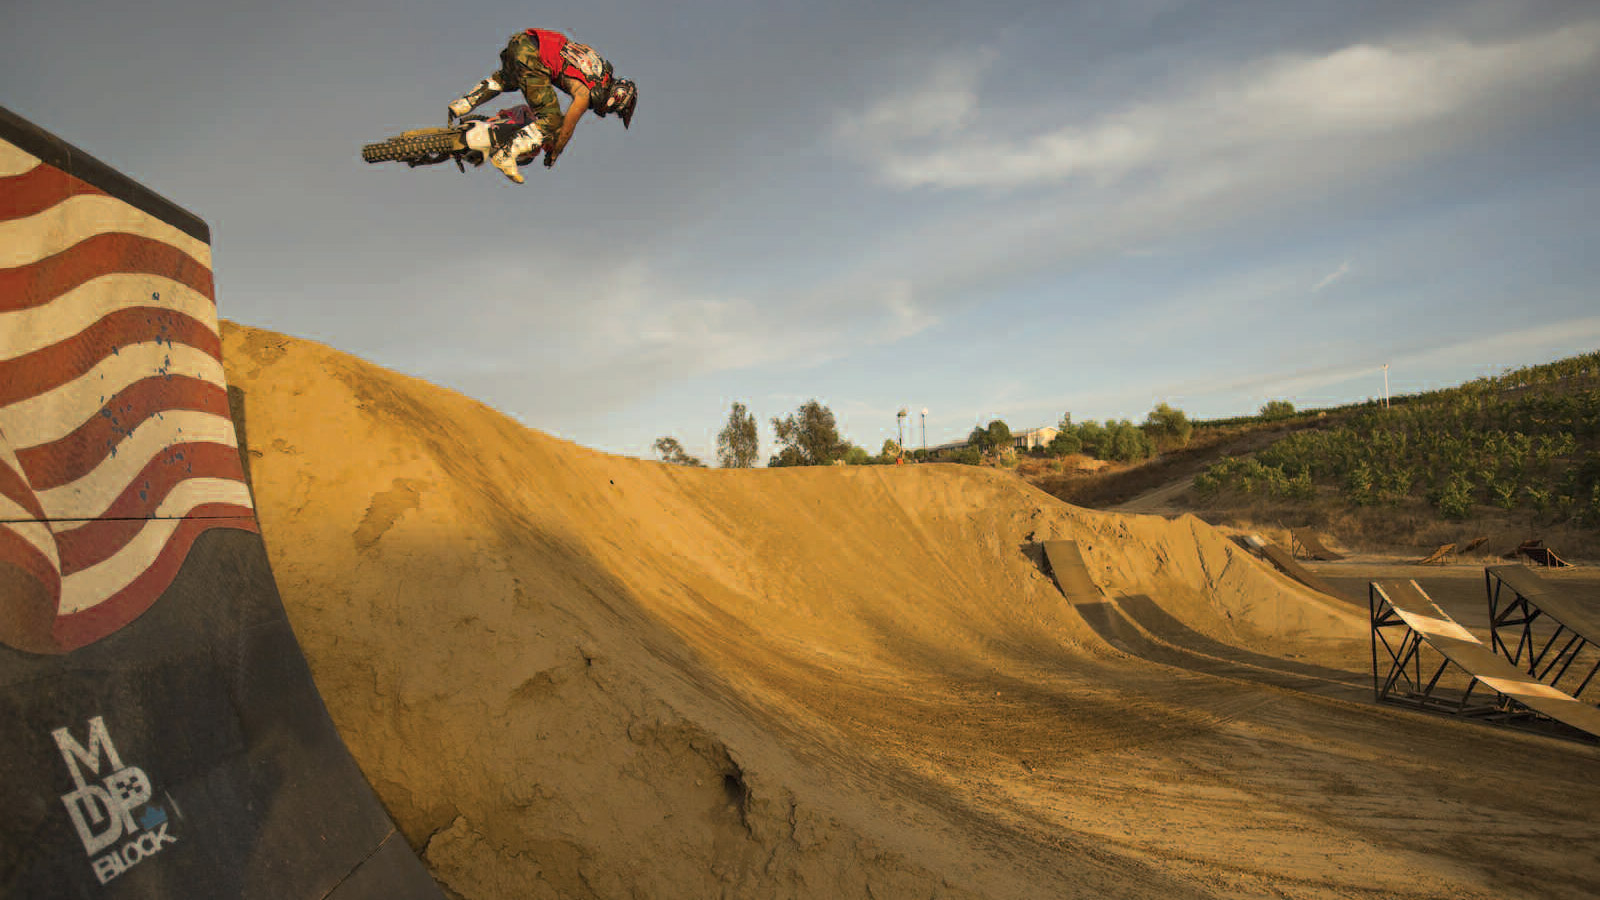 Metal Mulisha co-founder Larry Linkogle has written a memoir called Mind of the Demon. Here, Linkogle practices at the Metal Mulisha compound in Temecula, Calif.